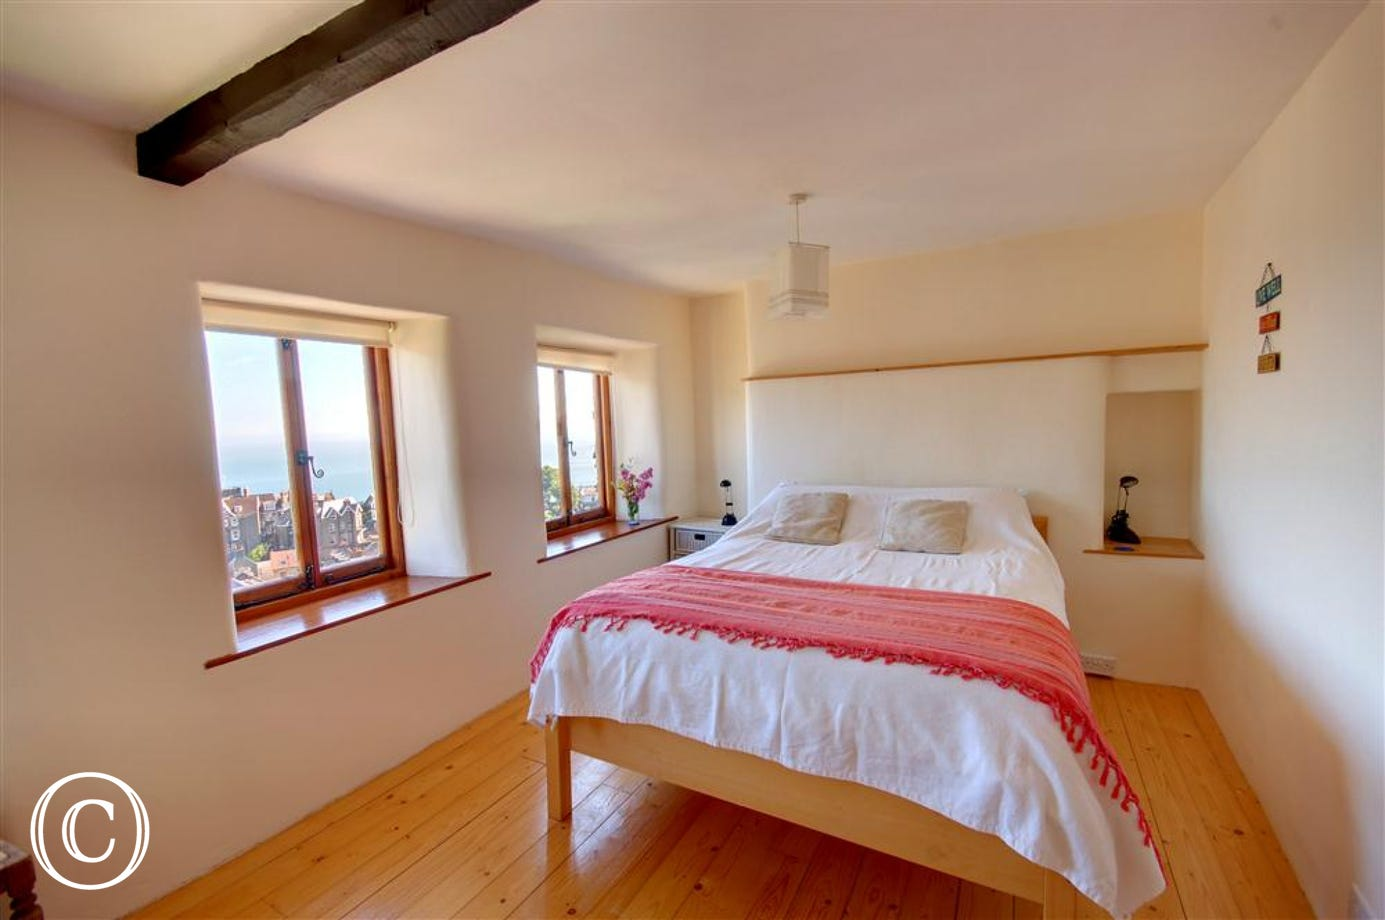 Dual aspect double bedroom with far distant views acorss the valley